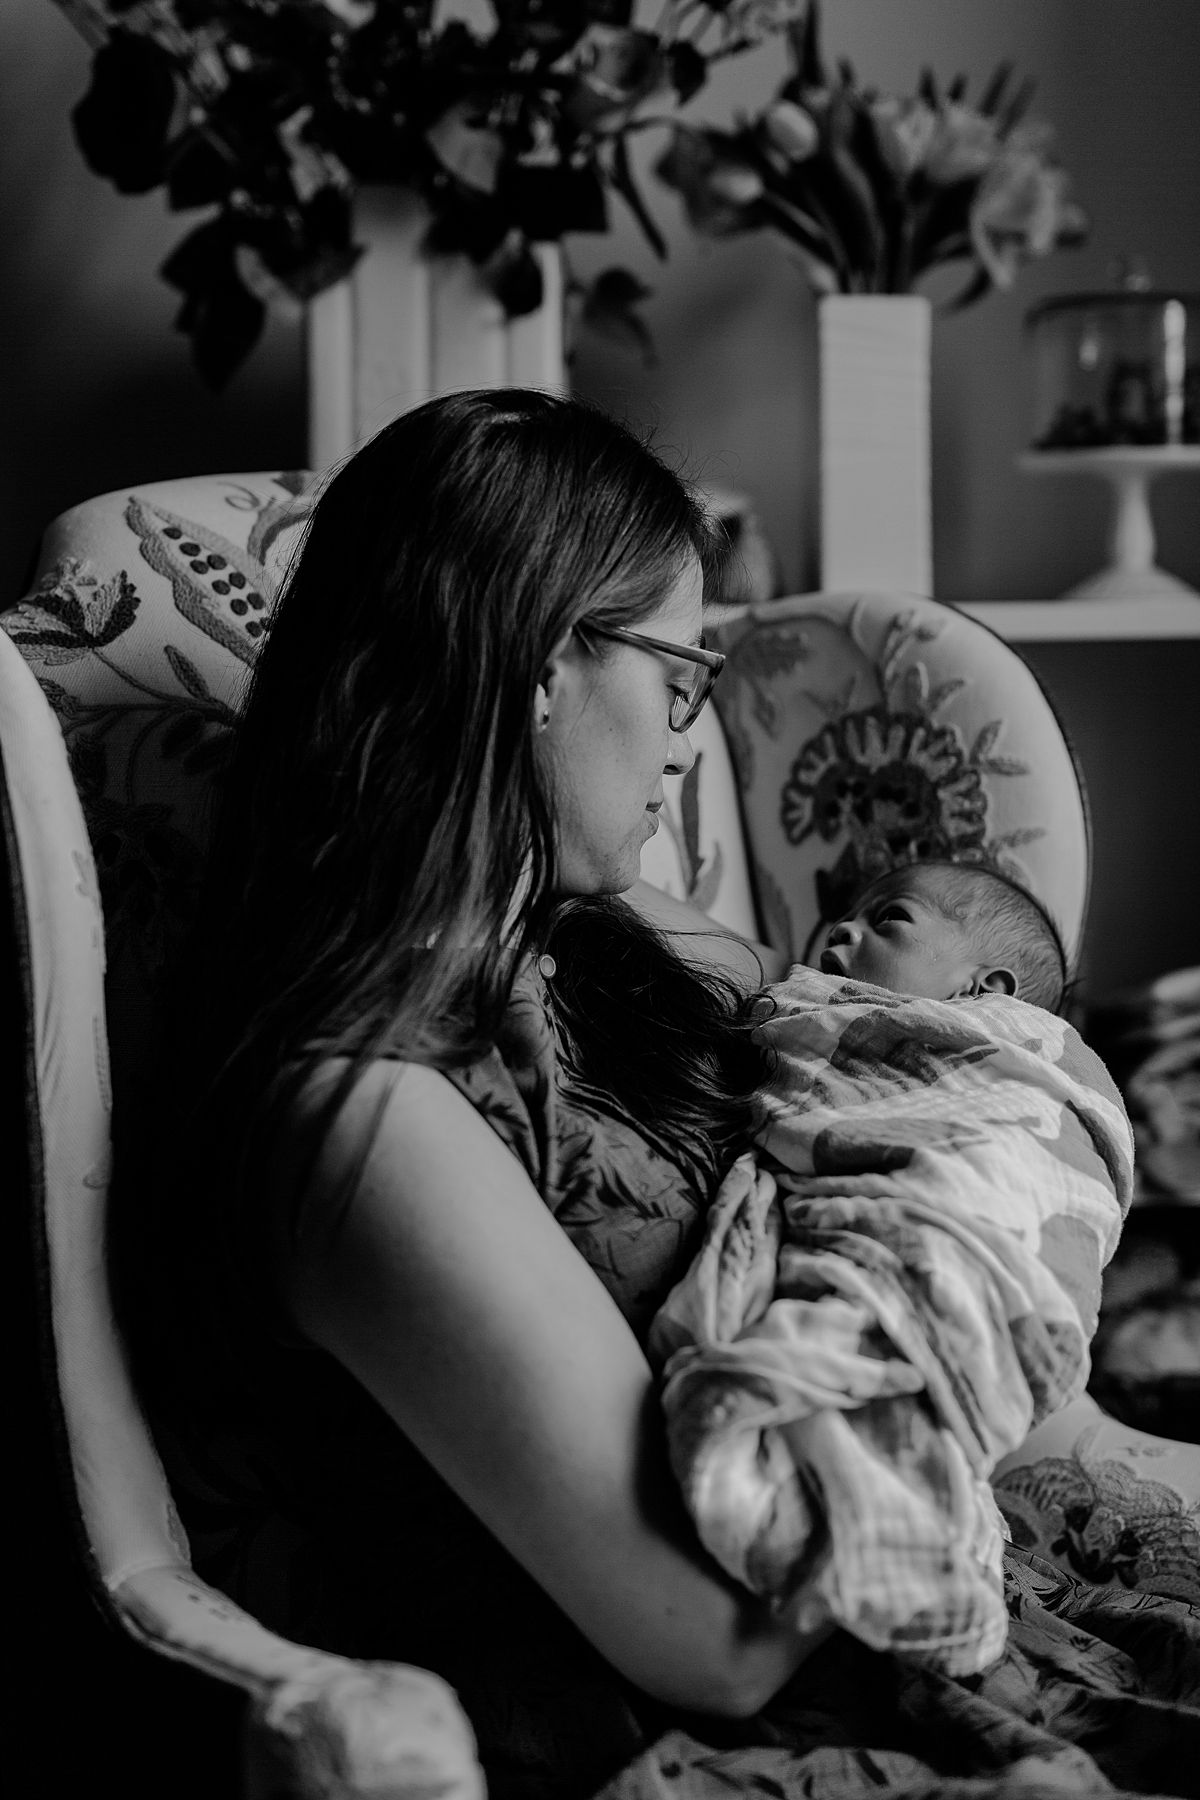 monochrome portrait of mom sitting in antique chair holding newborn son and dotingly looking at her son. photo by nyc family and newborn photographer krystil mcdowall